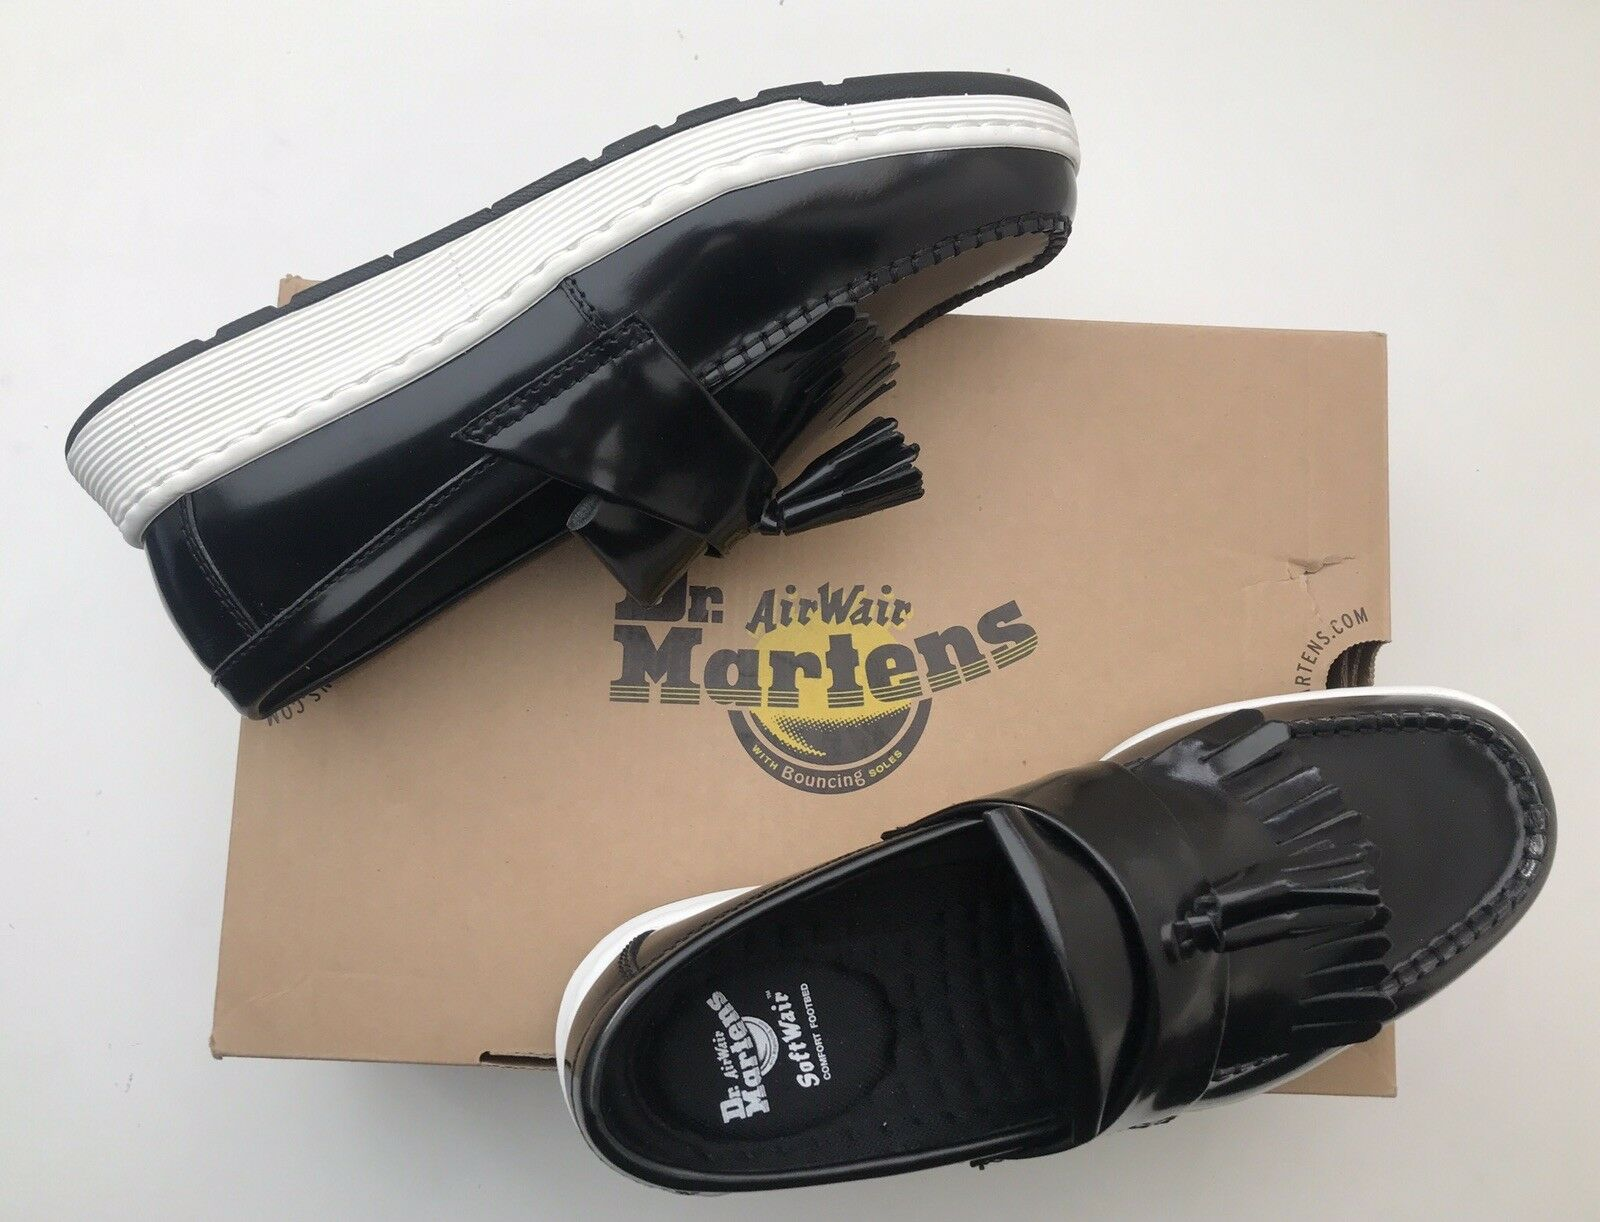 BNIB Dr Martens Edison Loafer 9 Polished Smooth Black Guaranteed Original